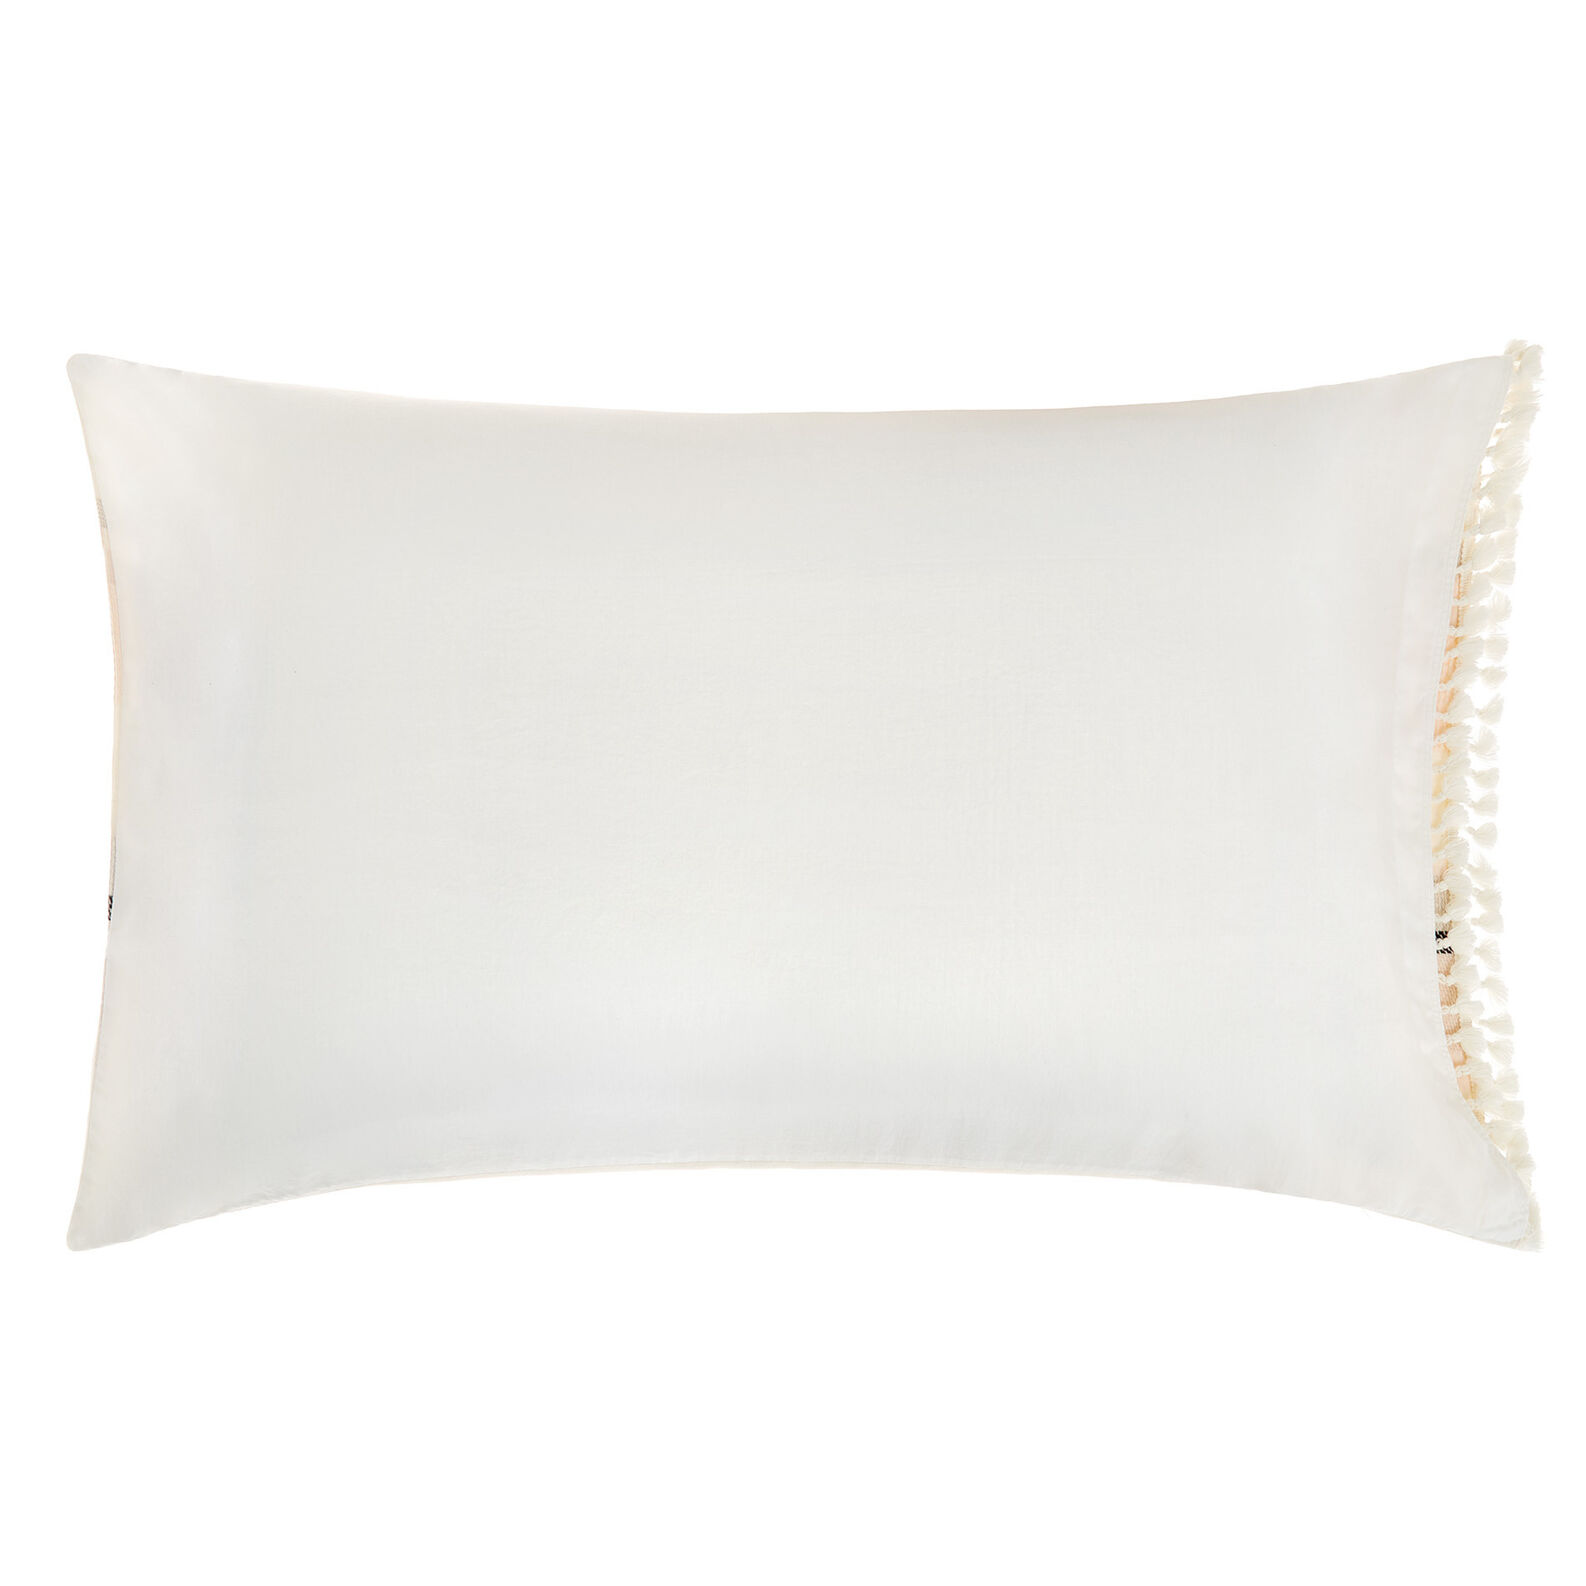 Cotton jacquard pillowcase with tassels